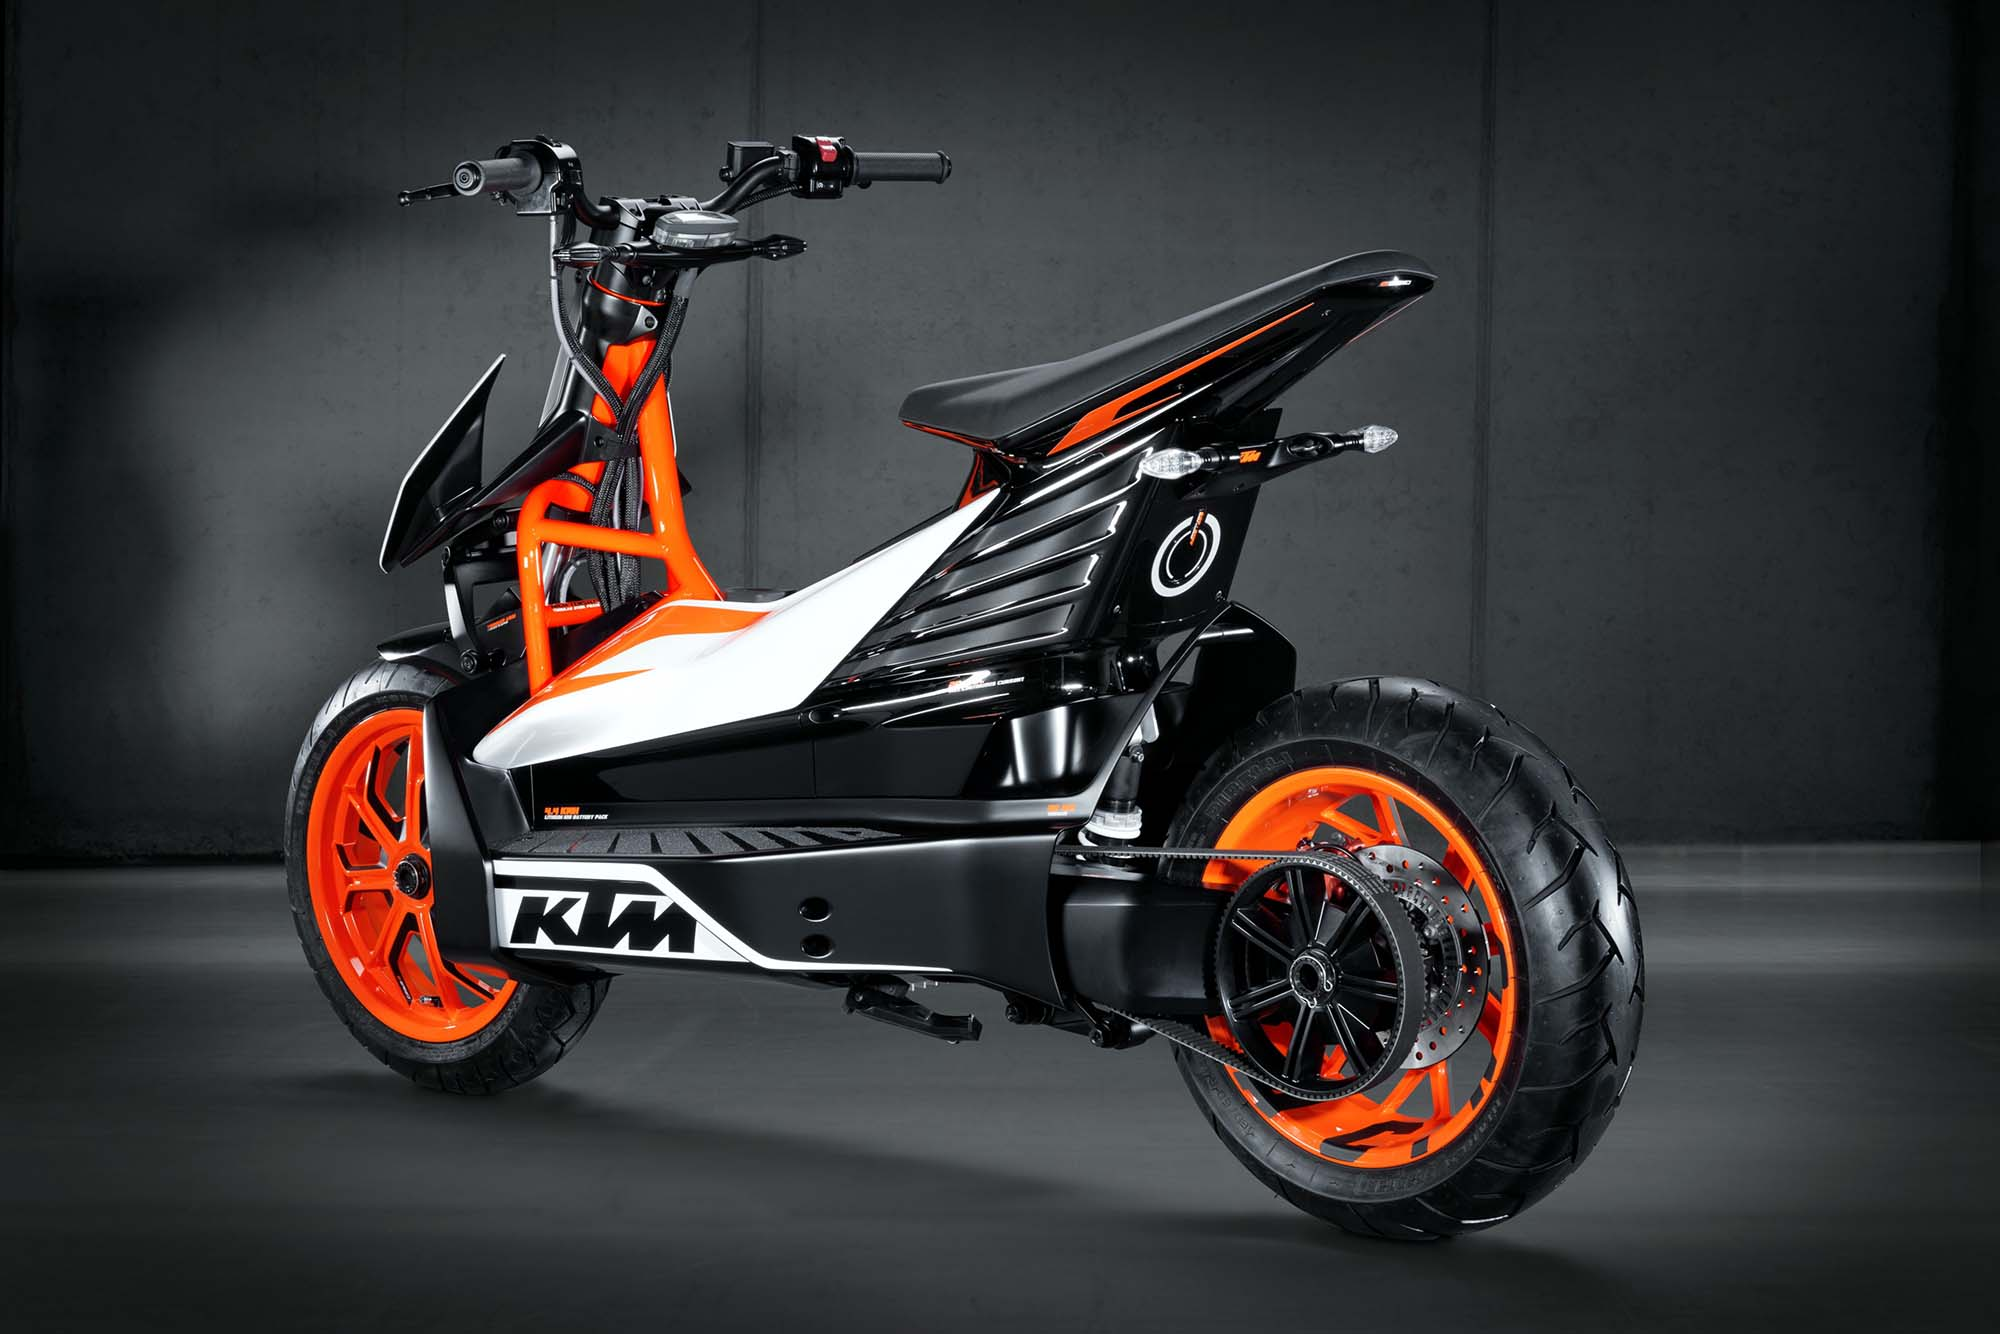 New Ktm Scooty Price >> KTM E-Speed Available in 2015 - KTM Freeride E in 2014 - Asphalt & Rubber